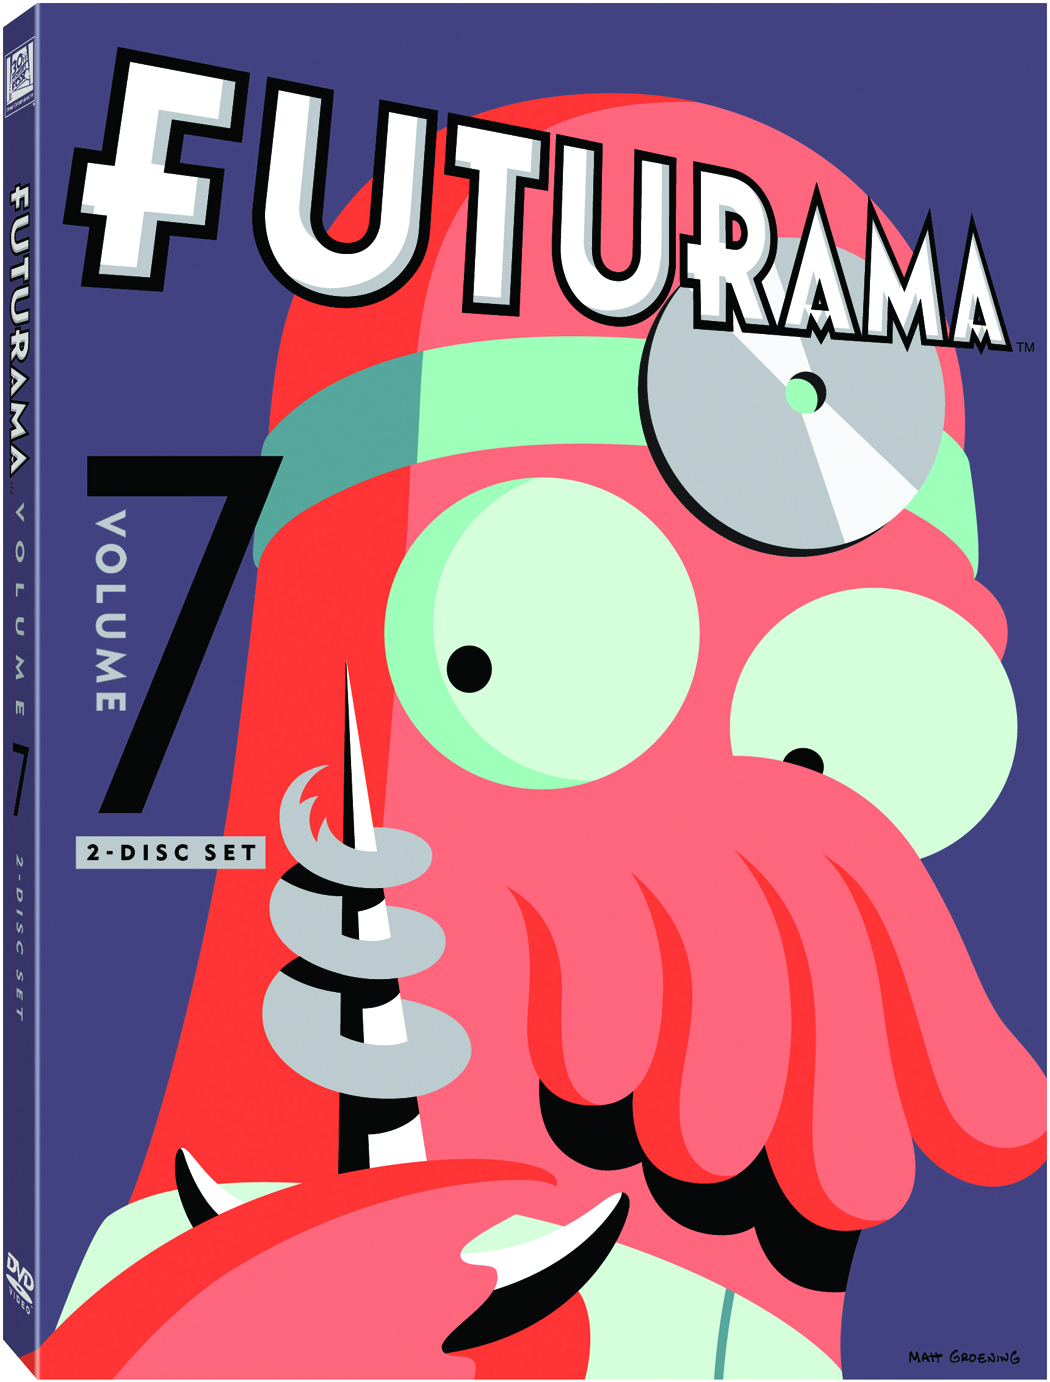 FUTURAMA DVD VOL 07